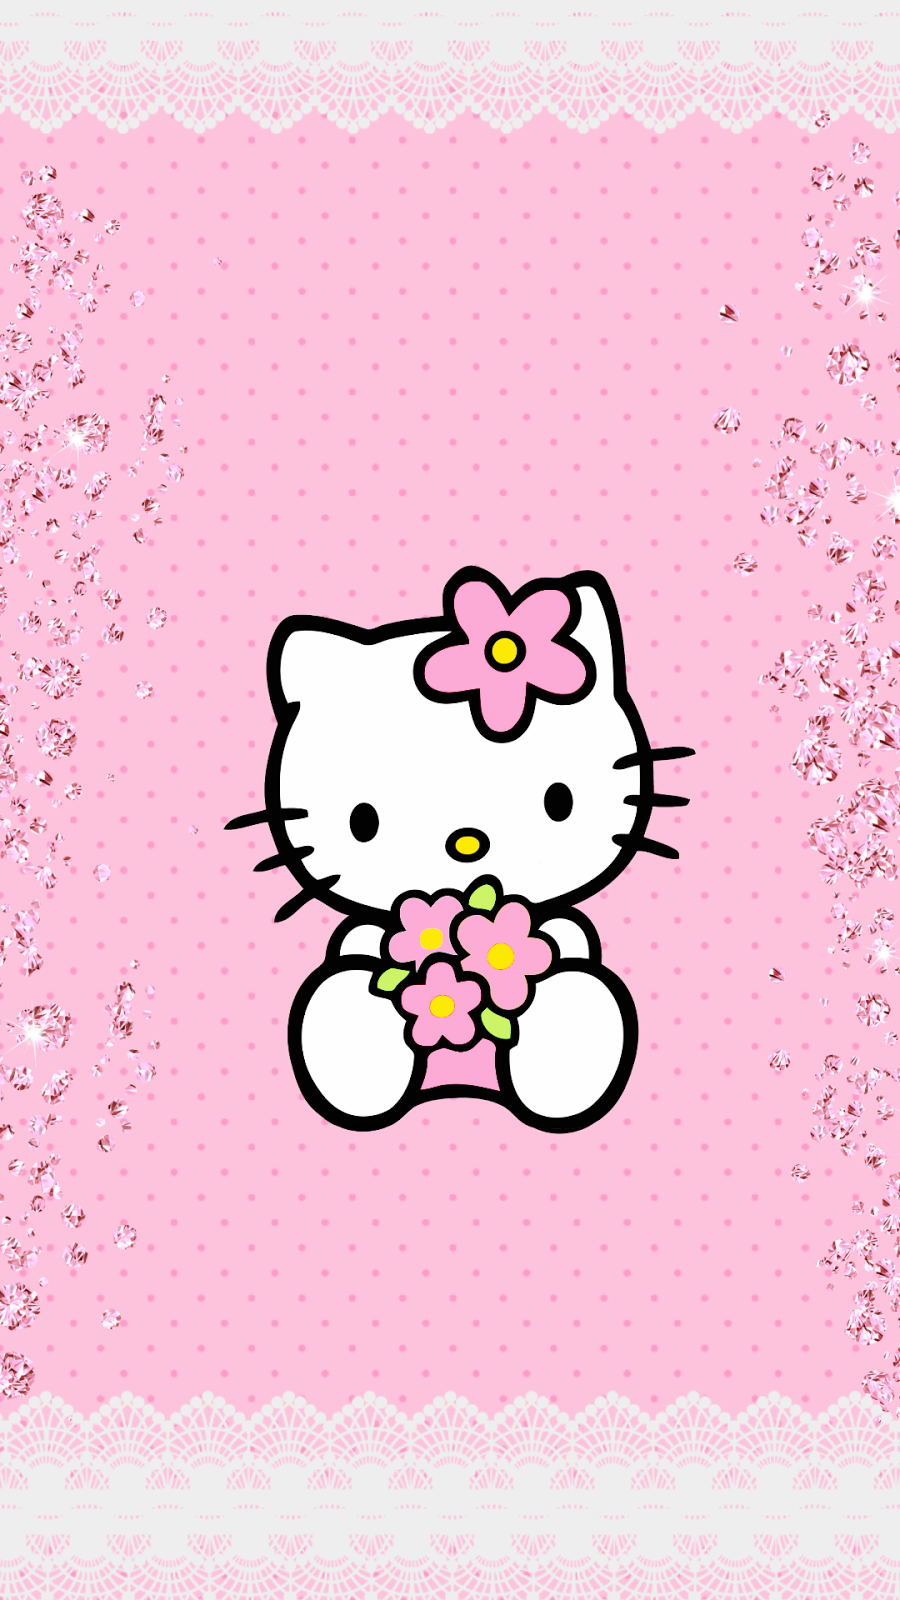 Top Wallpaper Hello Kitty Summer - 6ad9b2d0bbd75468c8c5bc2ae5792c8c  Photograph_957618.png